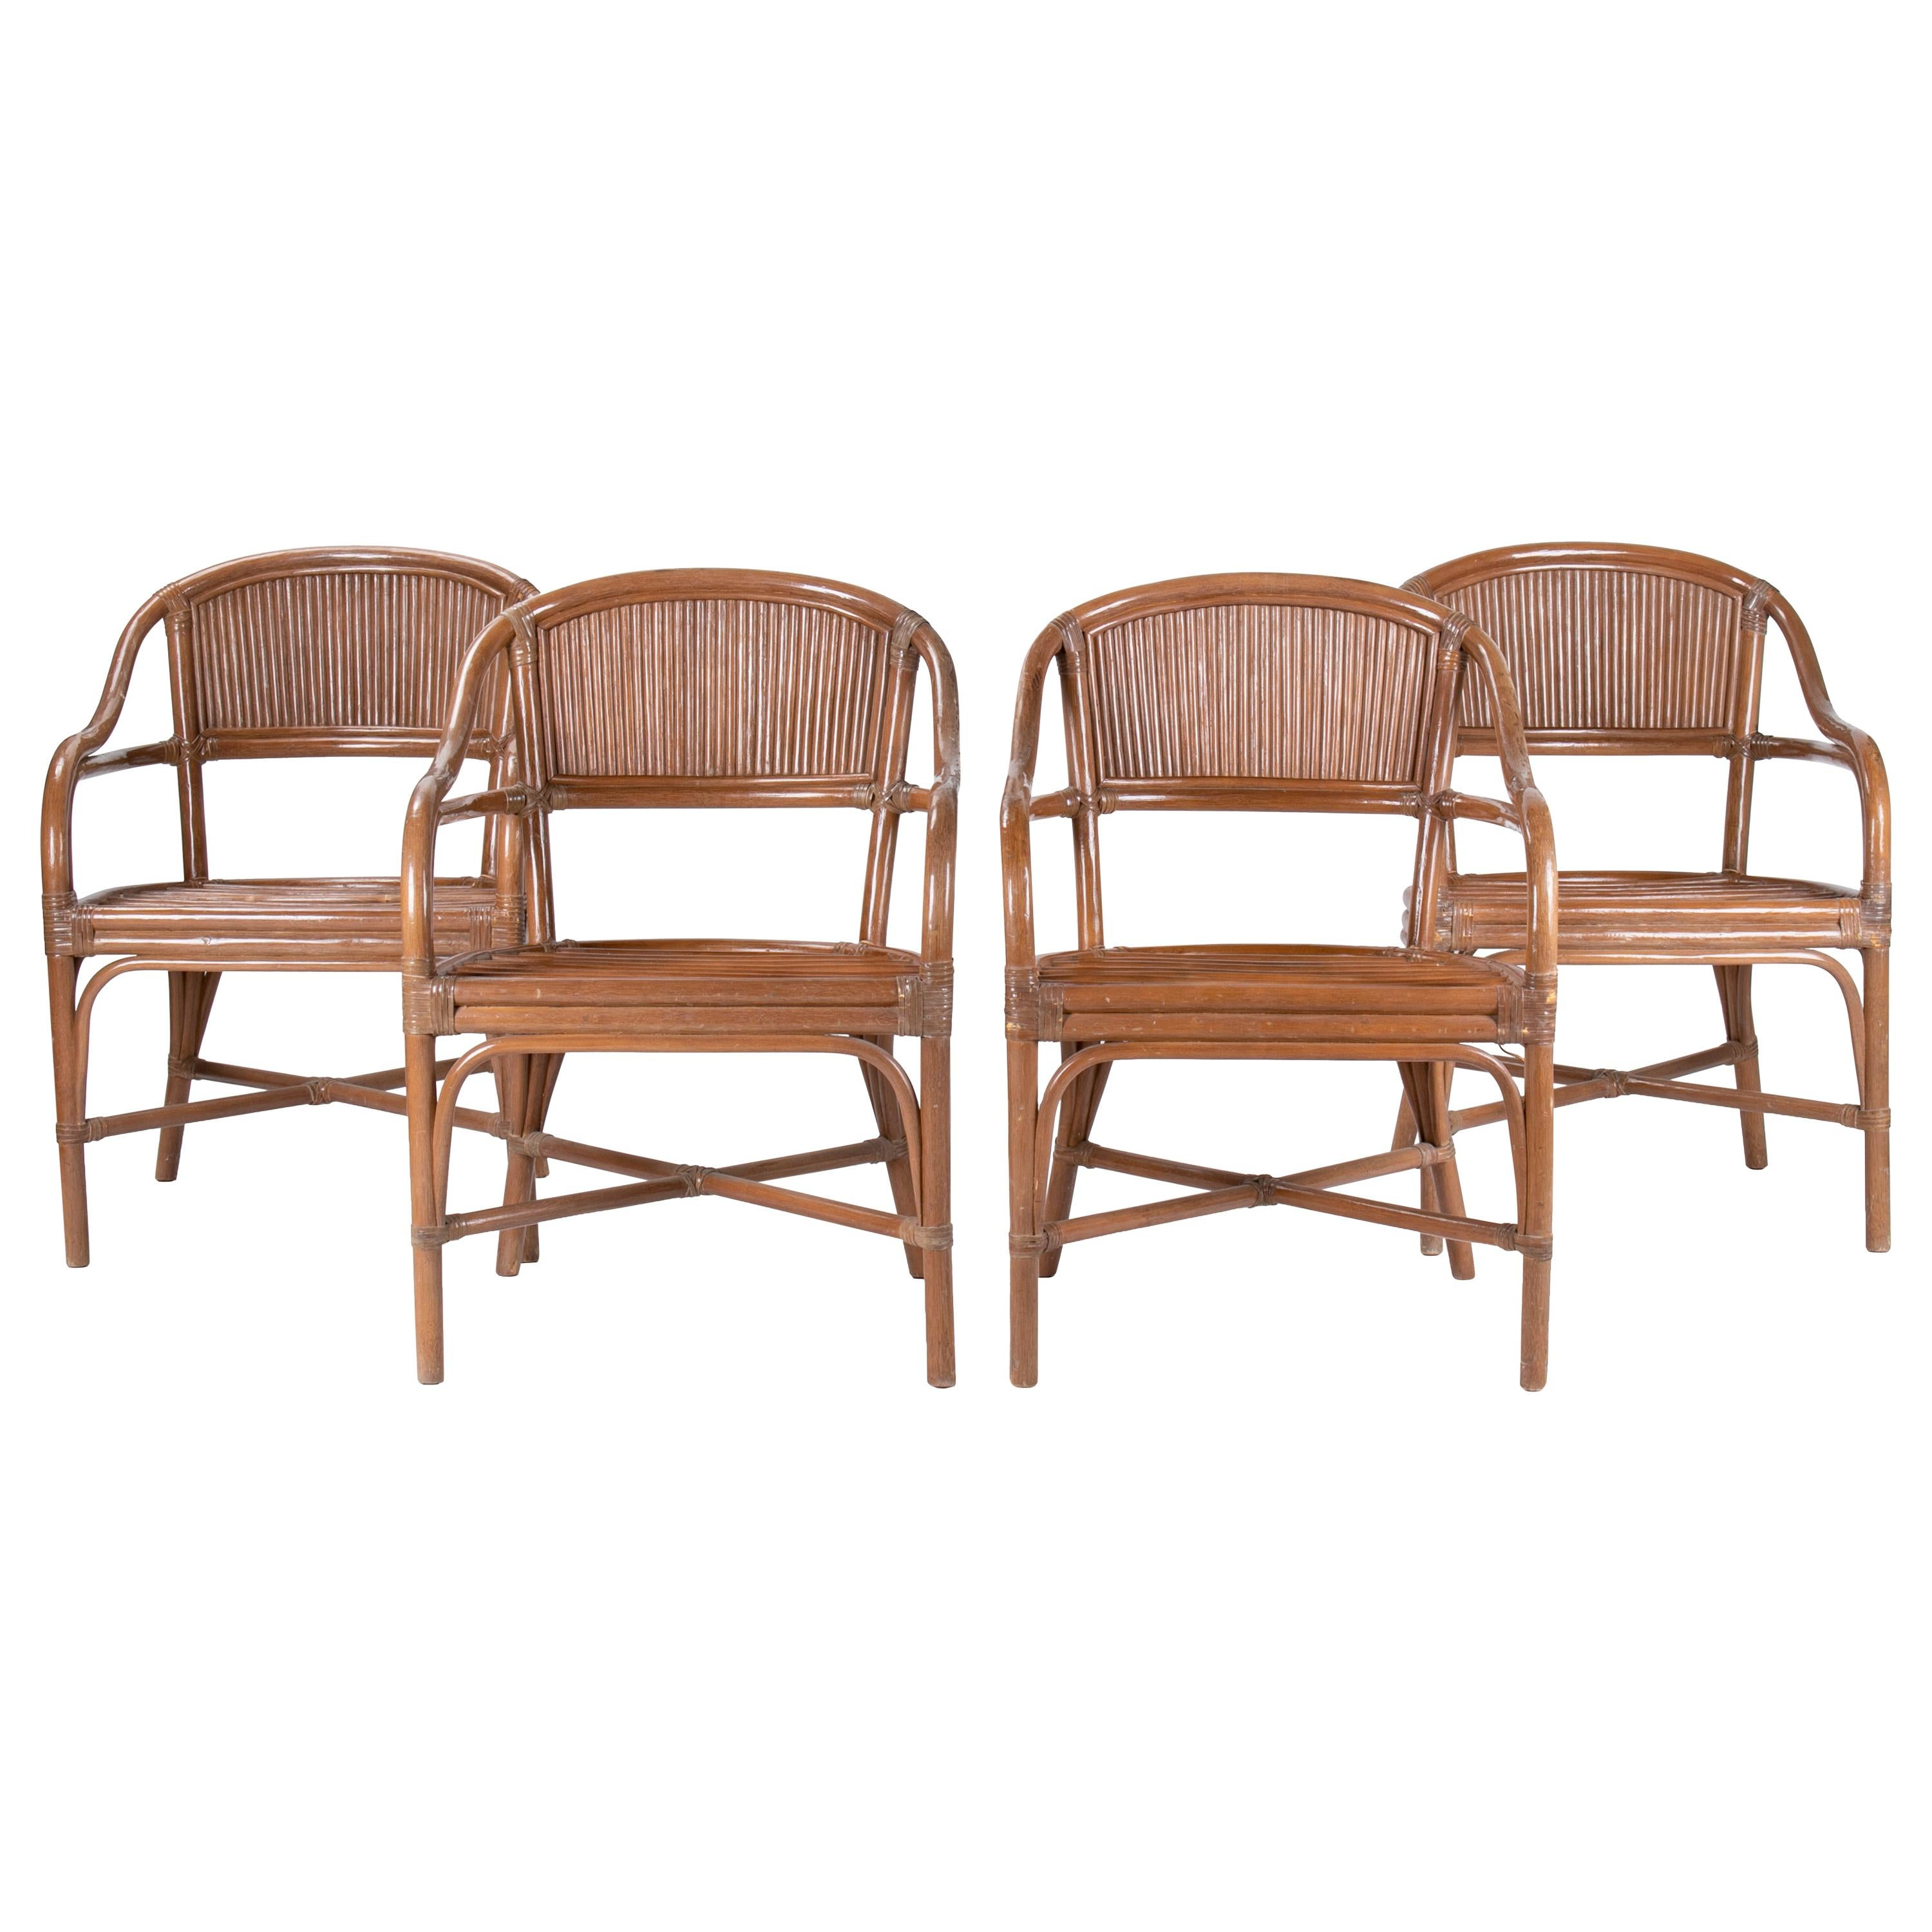 1980s Set of Four Spanish Bamboo Armchairs